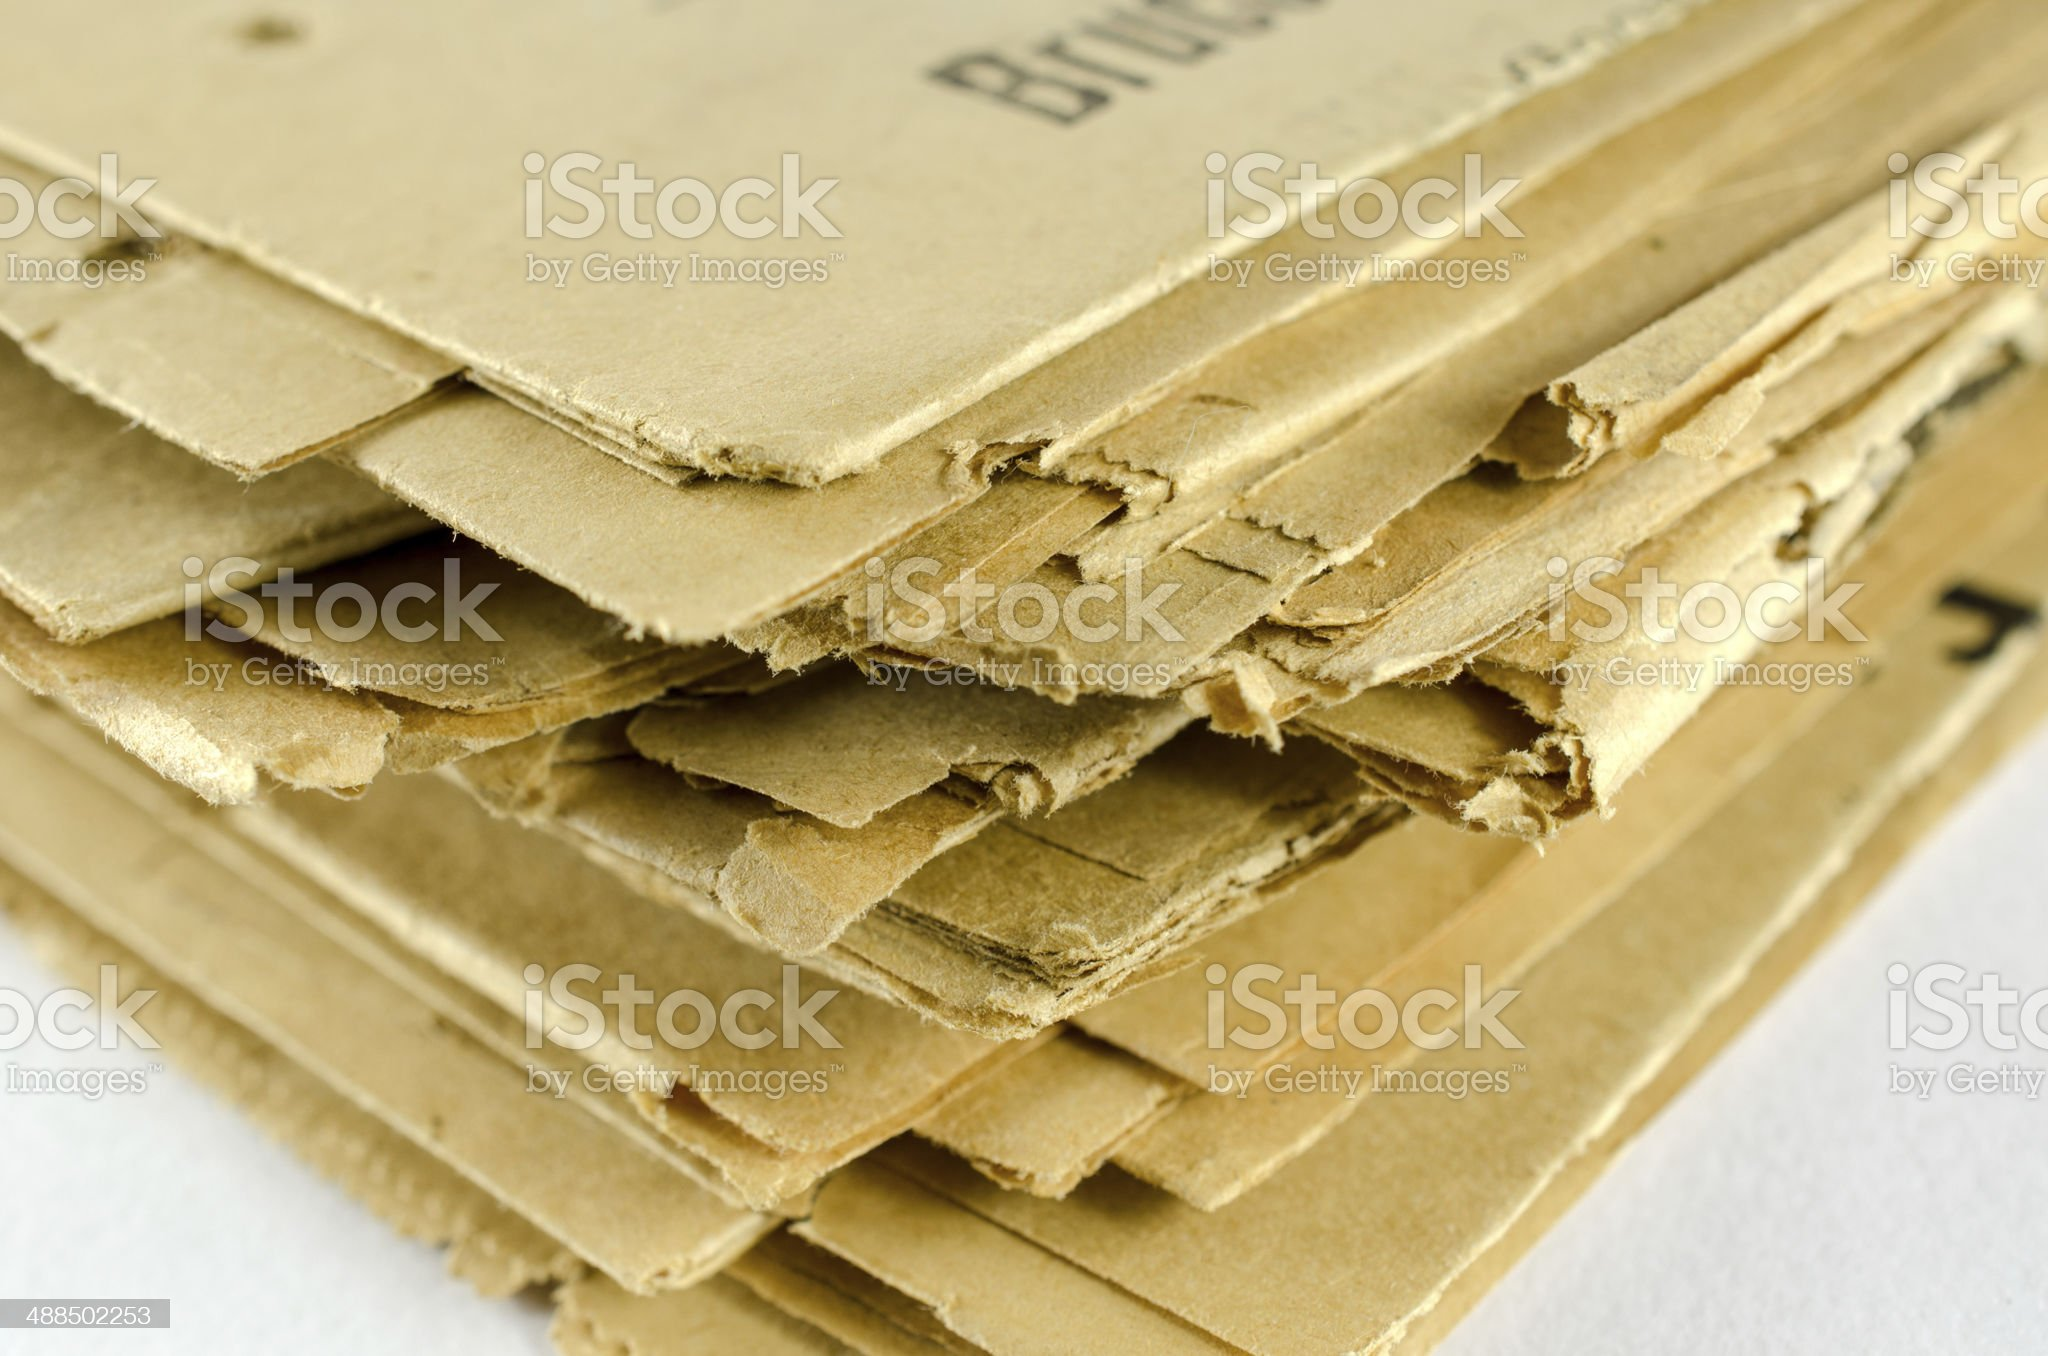 Stack of Archived Newspapers royalty-free stock photo